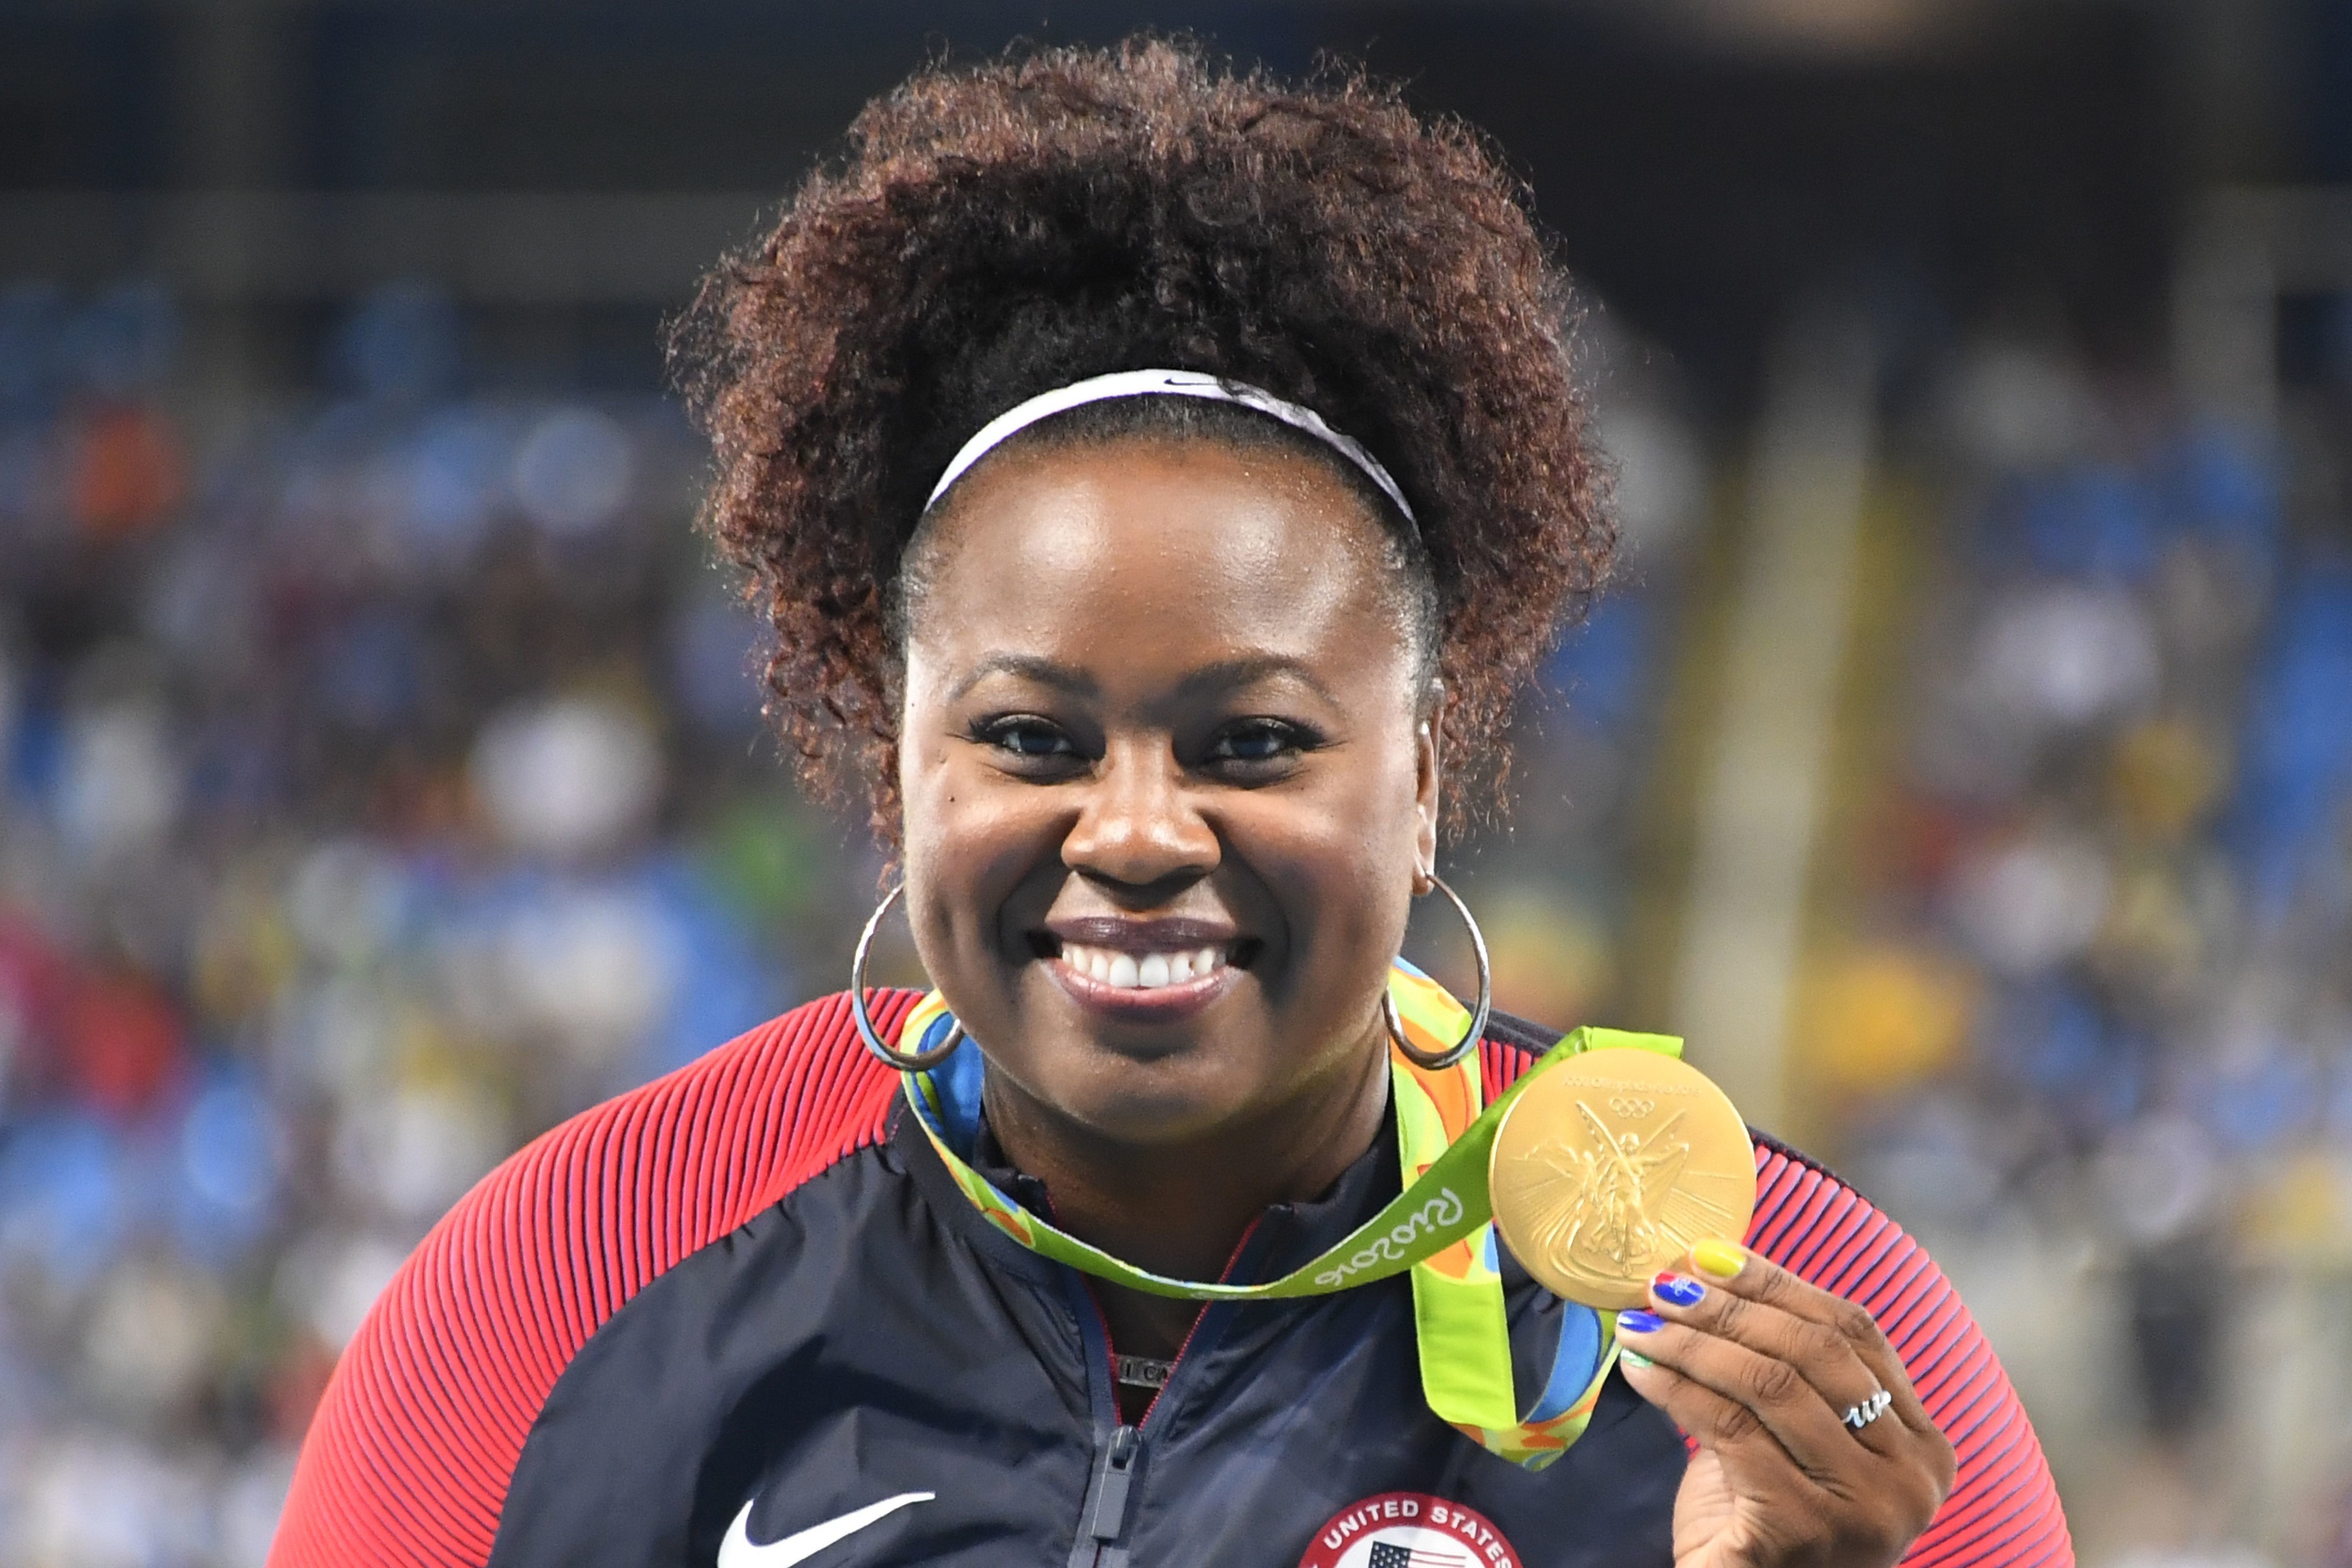 Michelle Carter won the gold medal in the Women's shot put on August 12.